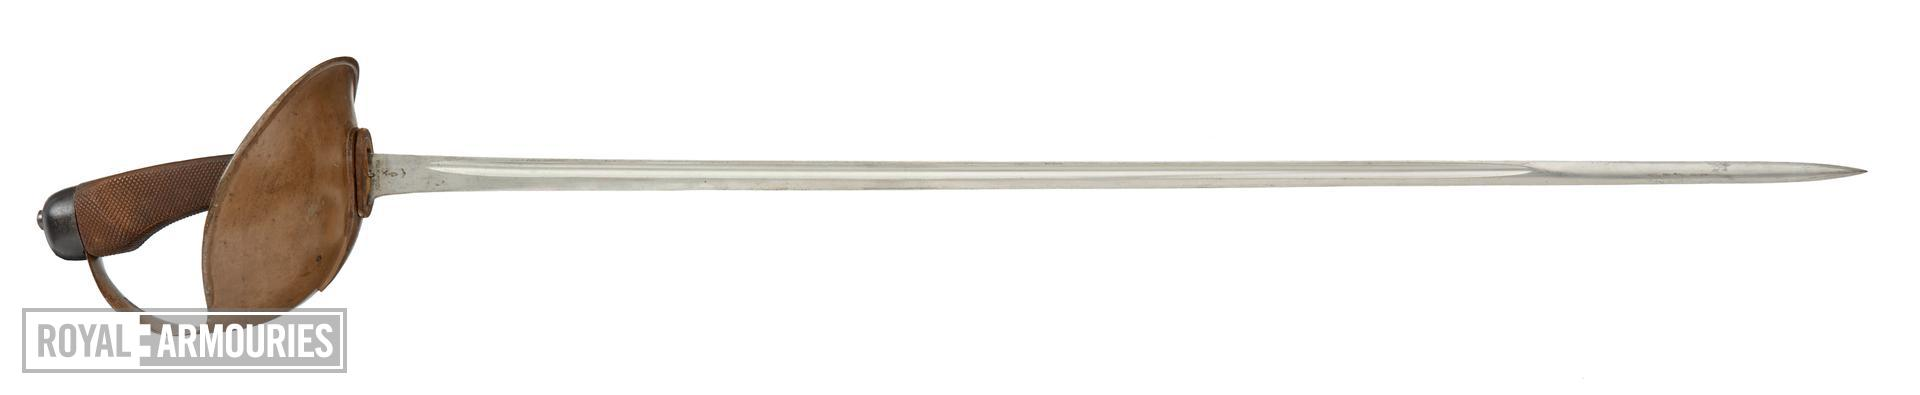 Pattern 1908 Mark 1 cavalry sword, final cavalry sword. British, about 1908. IX.2728